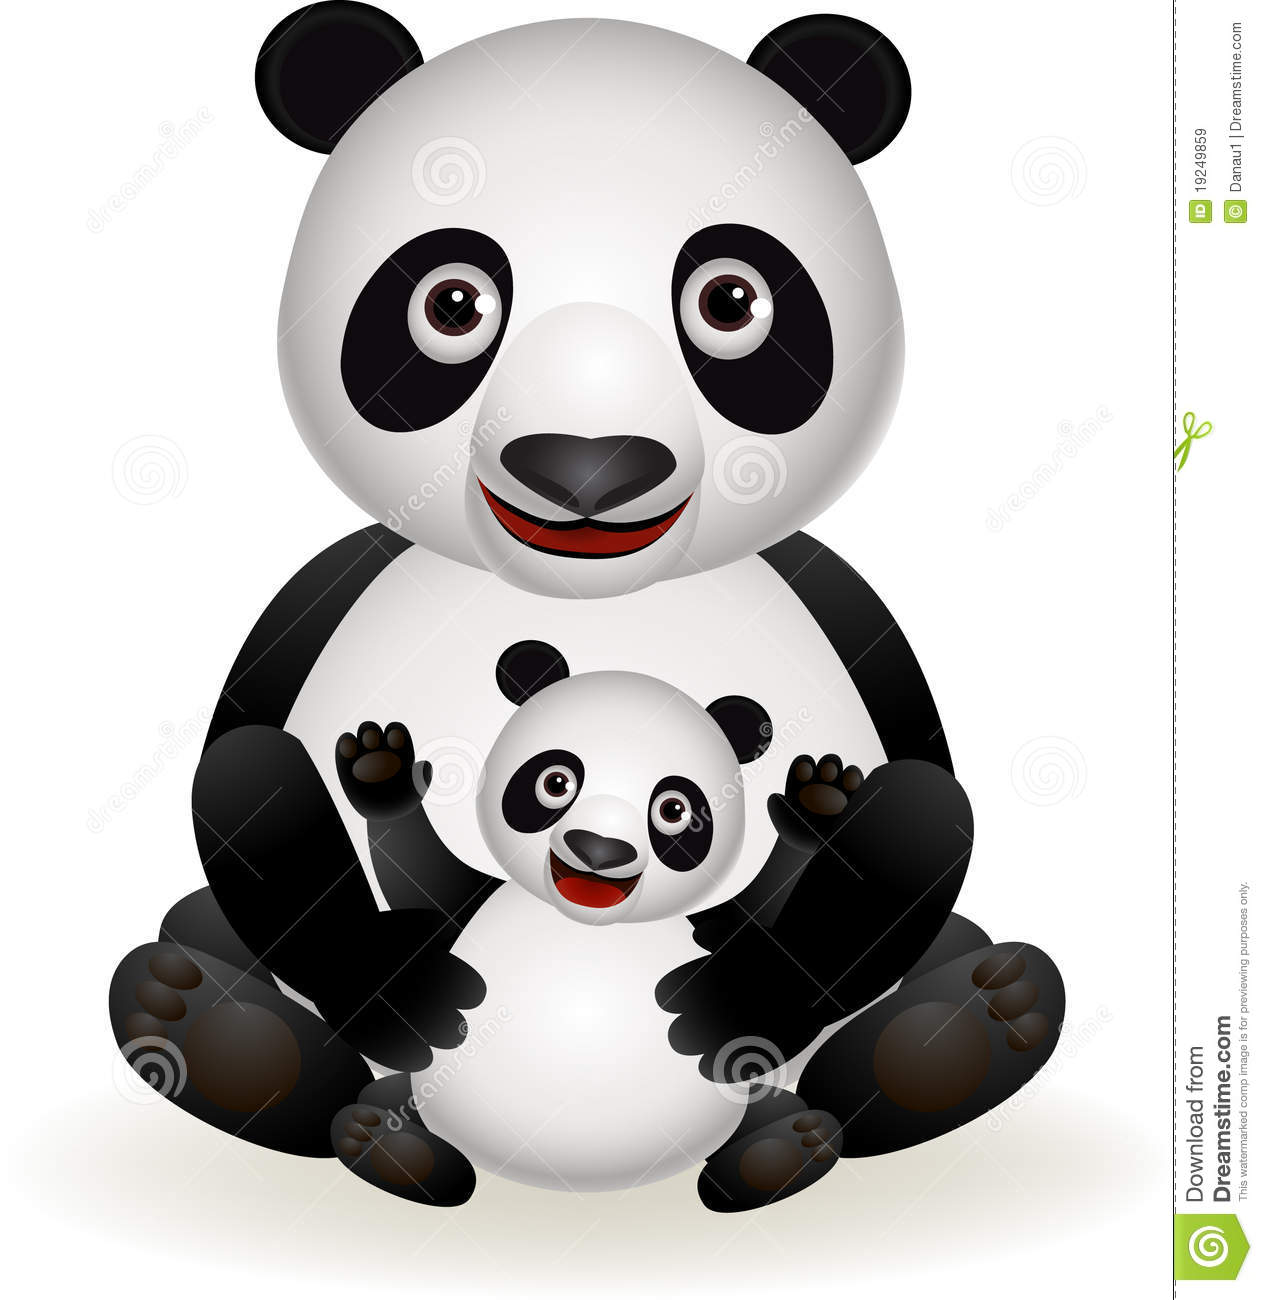 Cute Panda And Baby Panda Royalty Free Stock Images - Image: 19249859